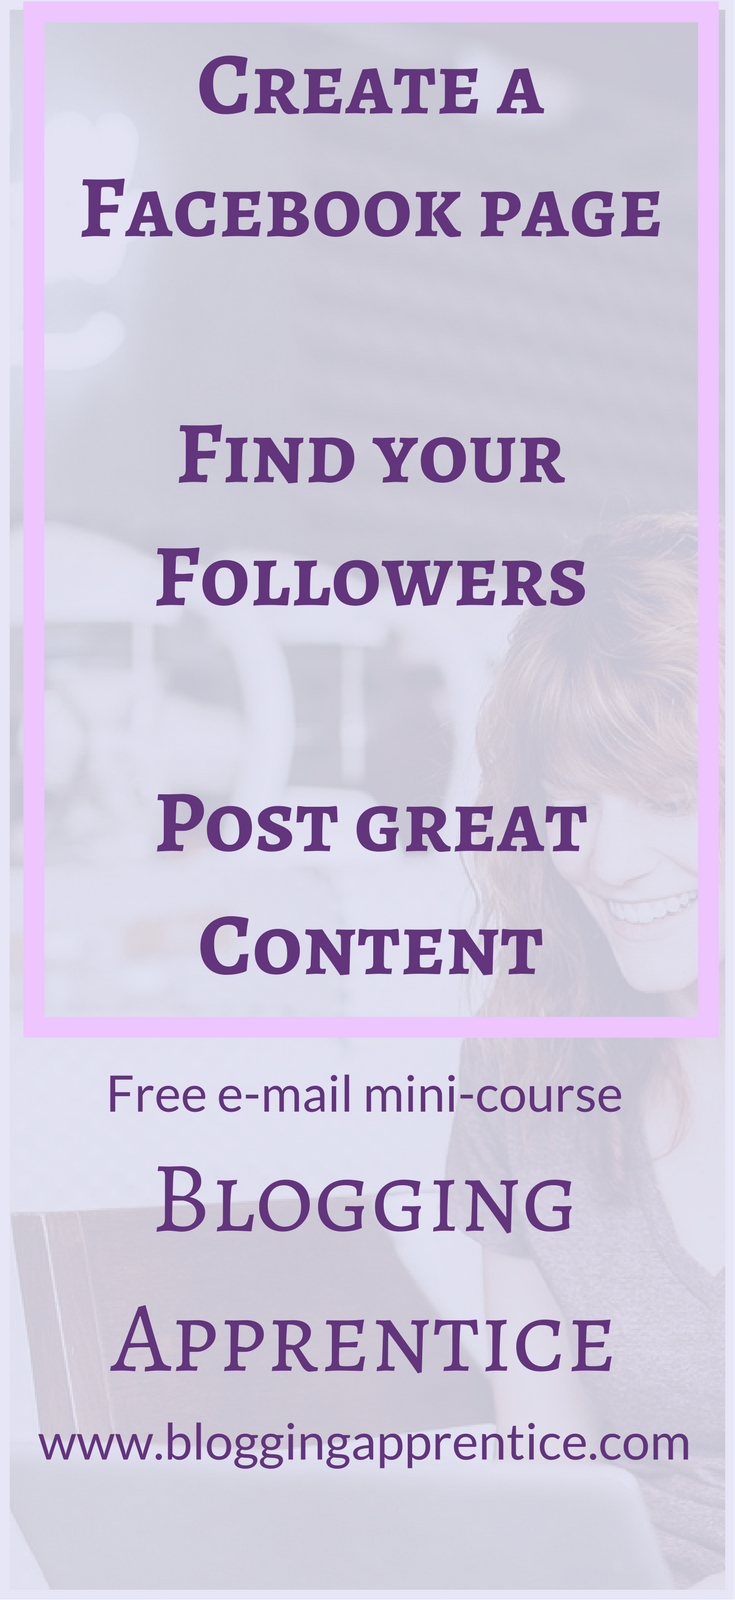 Create your Facebook business page, find your first followers and post great content with the Blogging Apprentice e-mail mini-course.